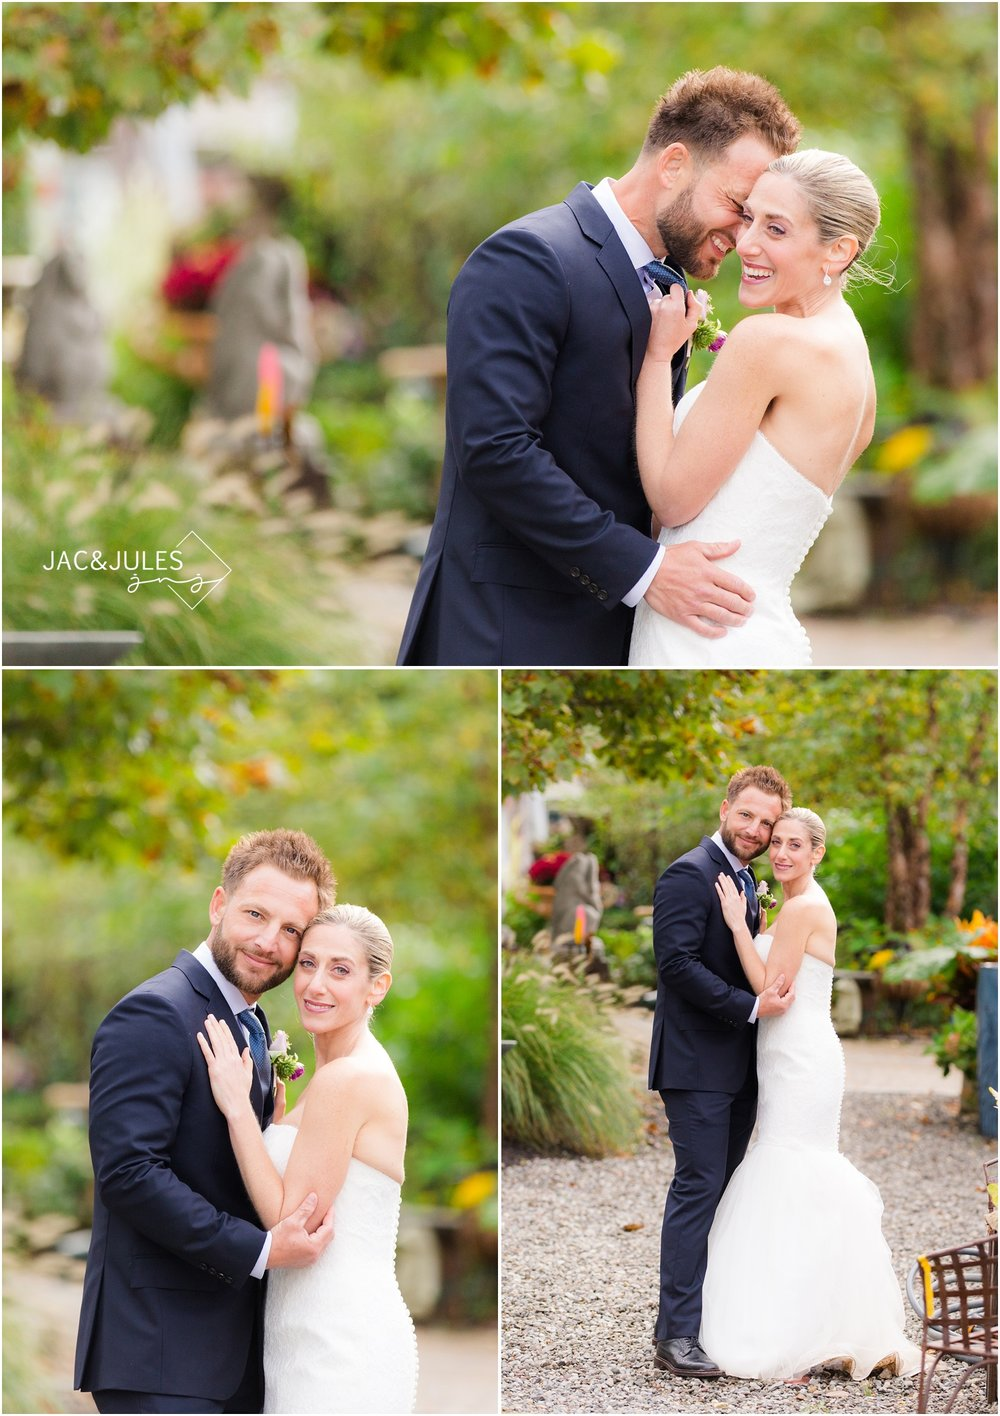 intimate garden wedding portraits of bride and groom.